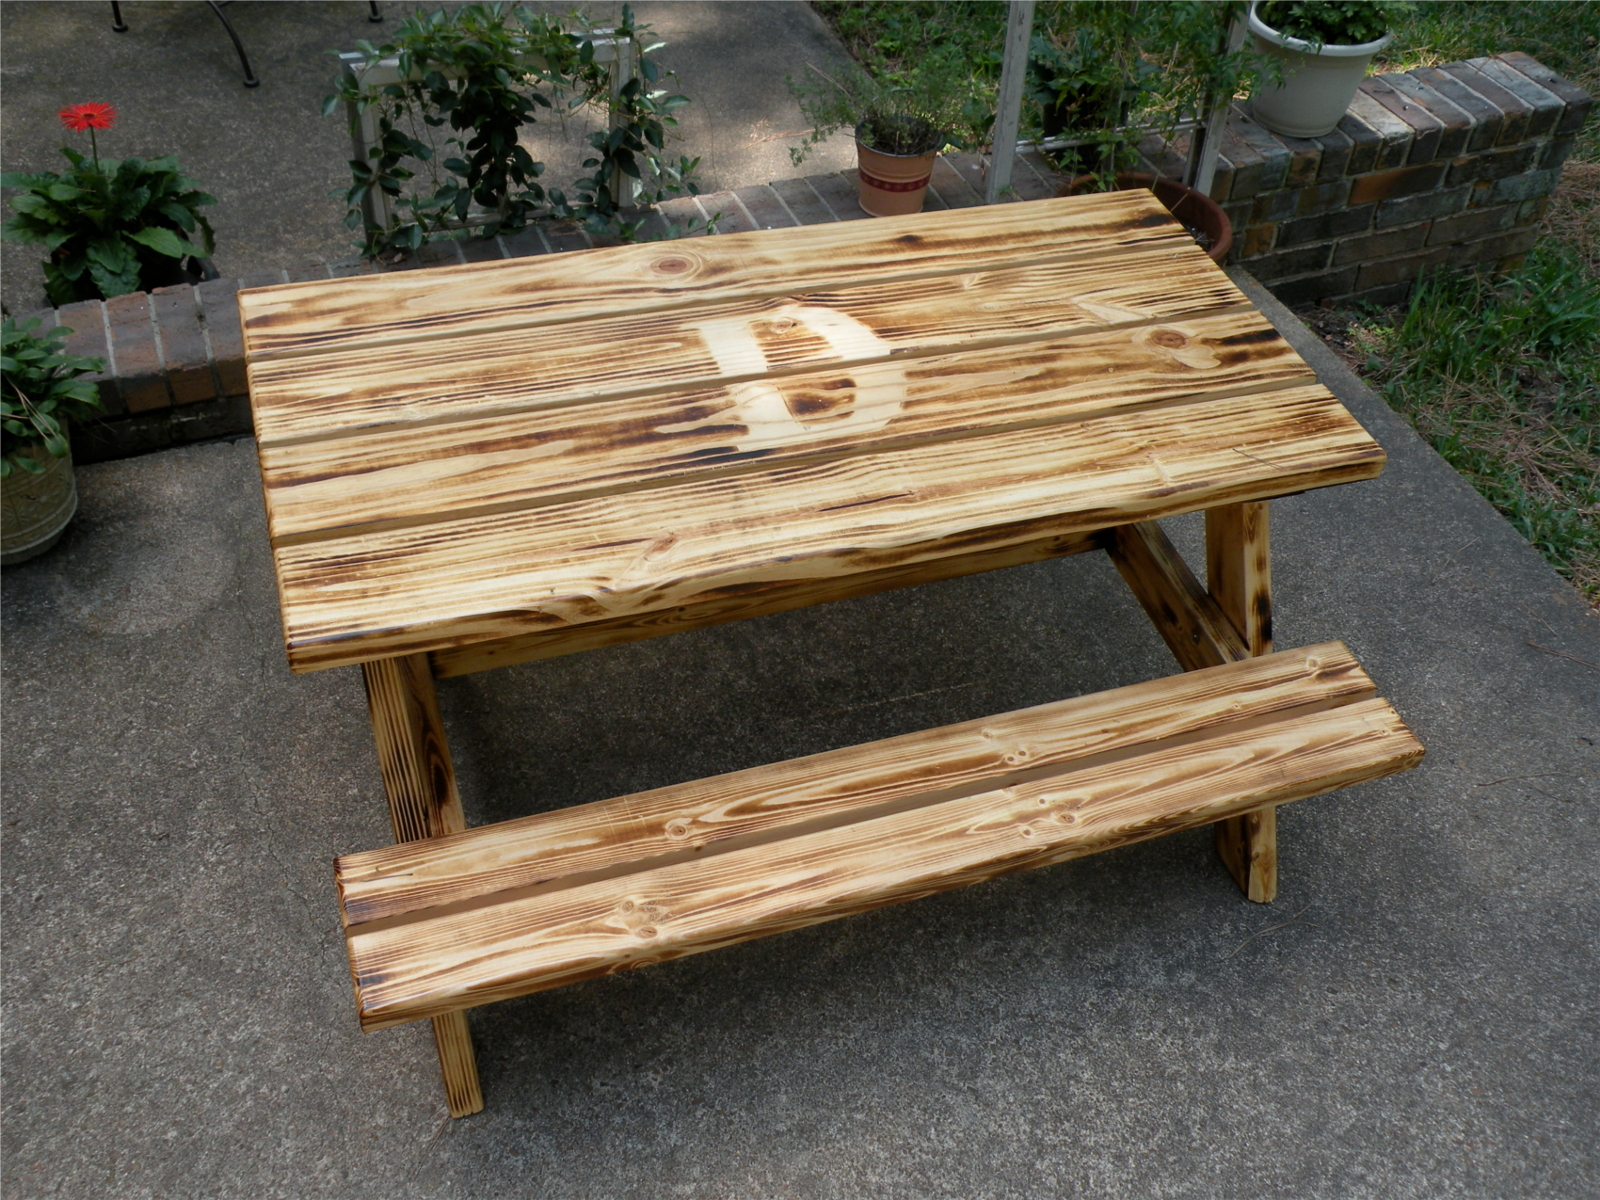 Child Picnic Table | Do It Yourself Home Projects from Ana White